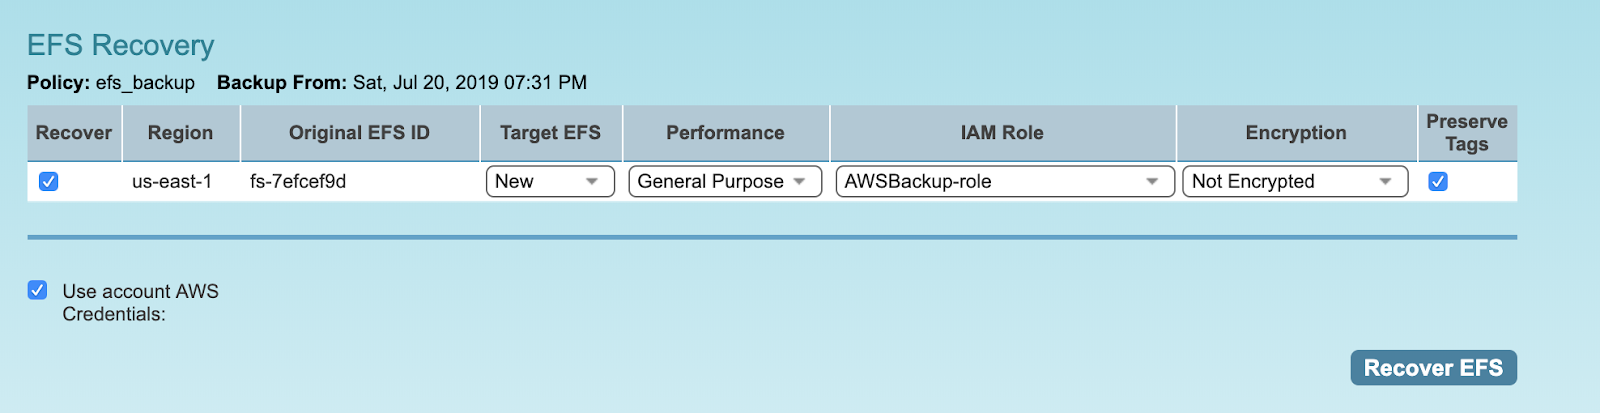 AWS EFS Backup and Recovery